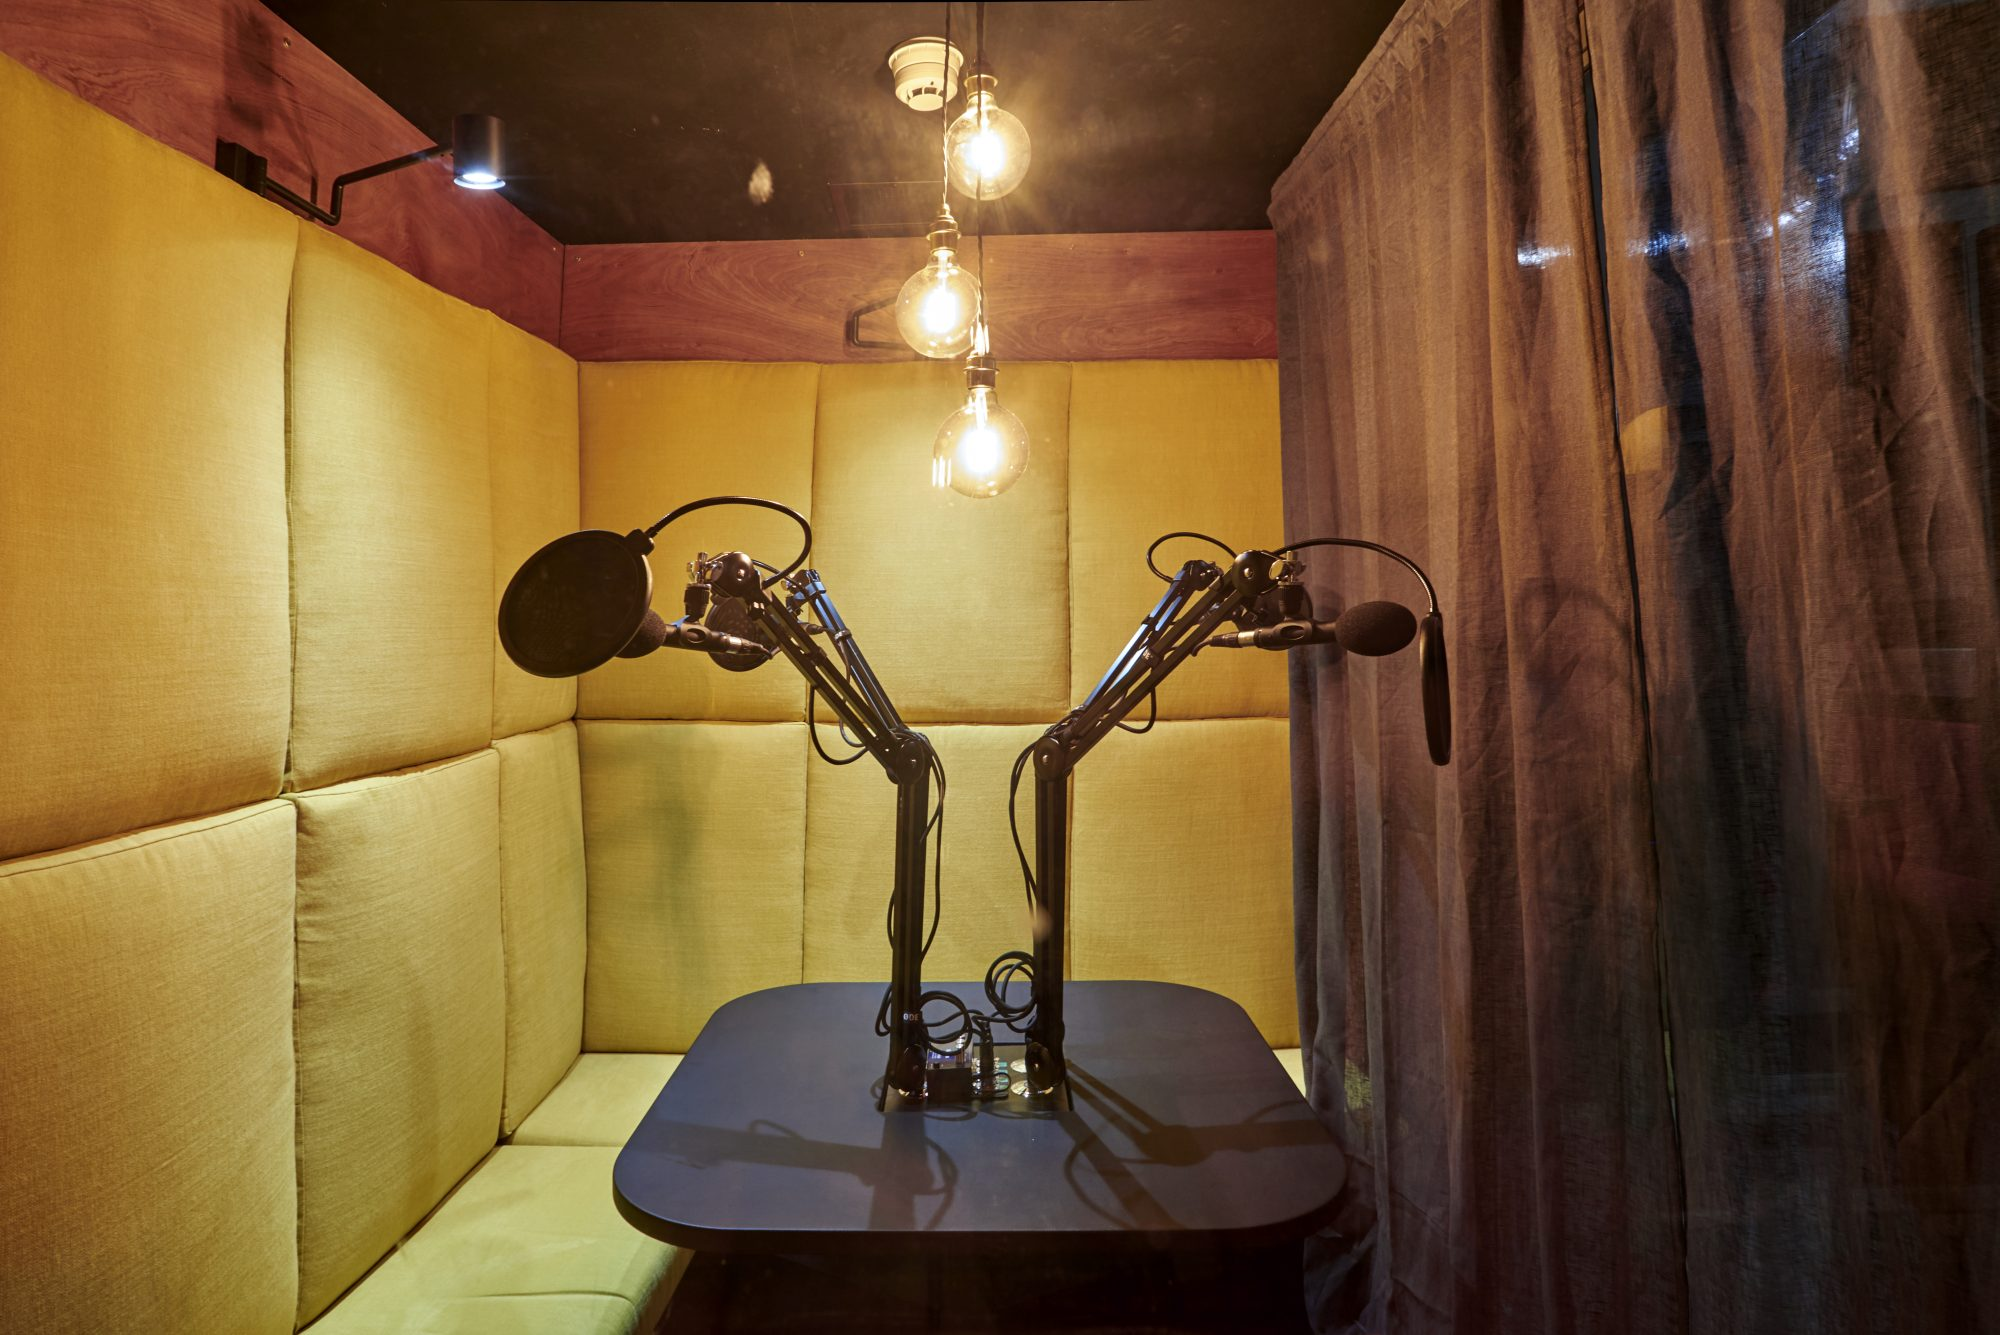 soho-radio-studios_podcast-recording-studio-02-microphones-yellow-seats